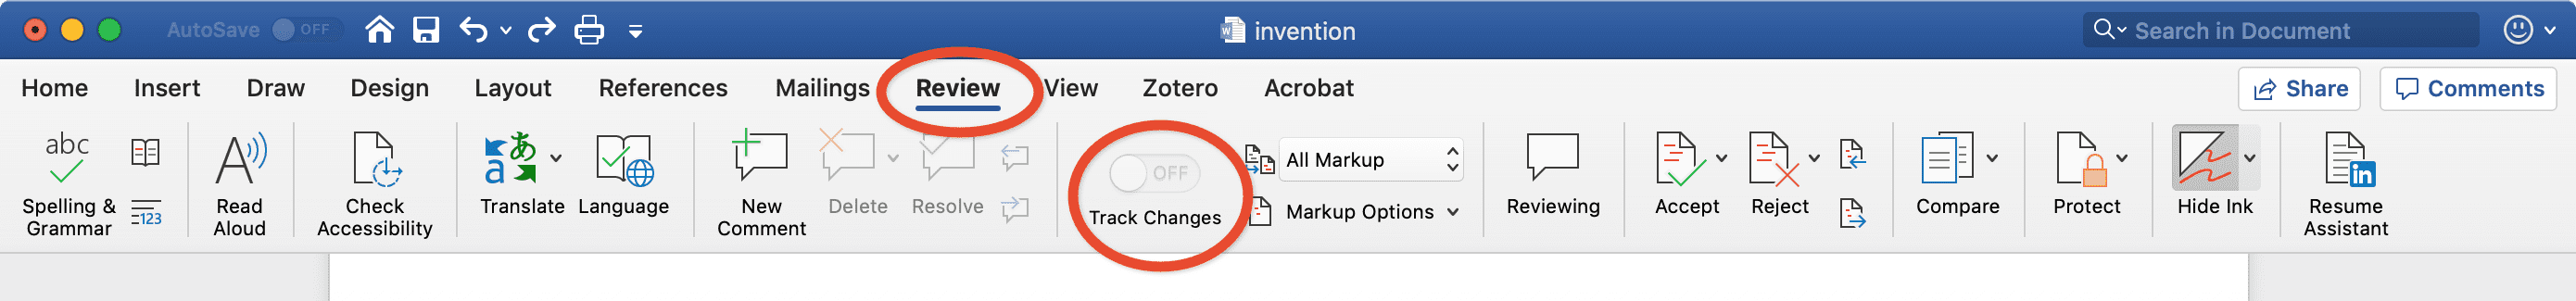 Screenshot of Word's *track changes* toolbar options.